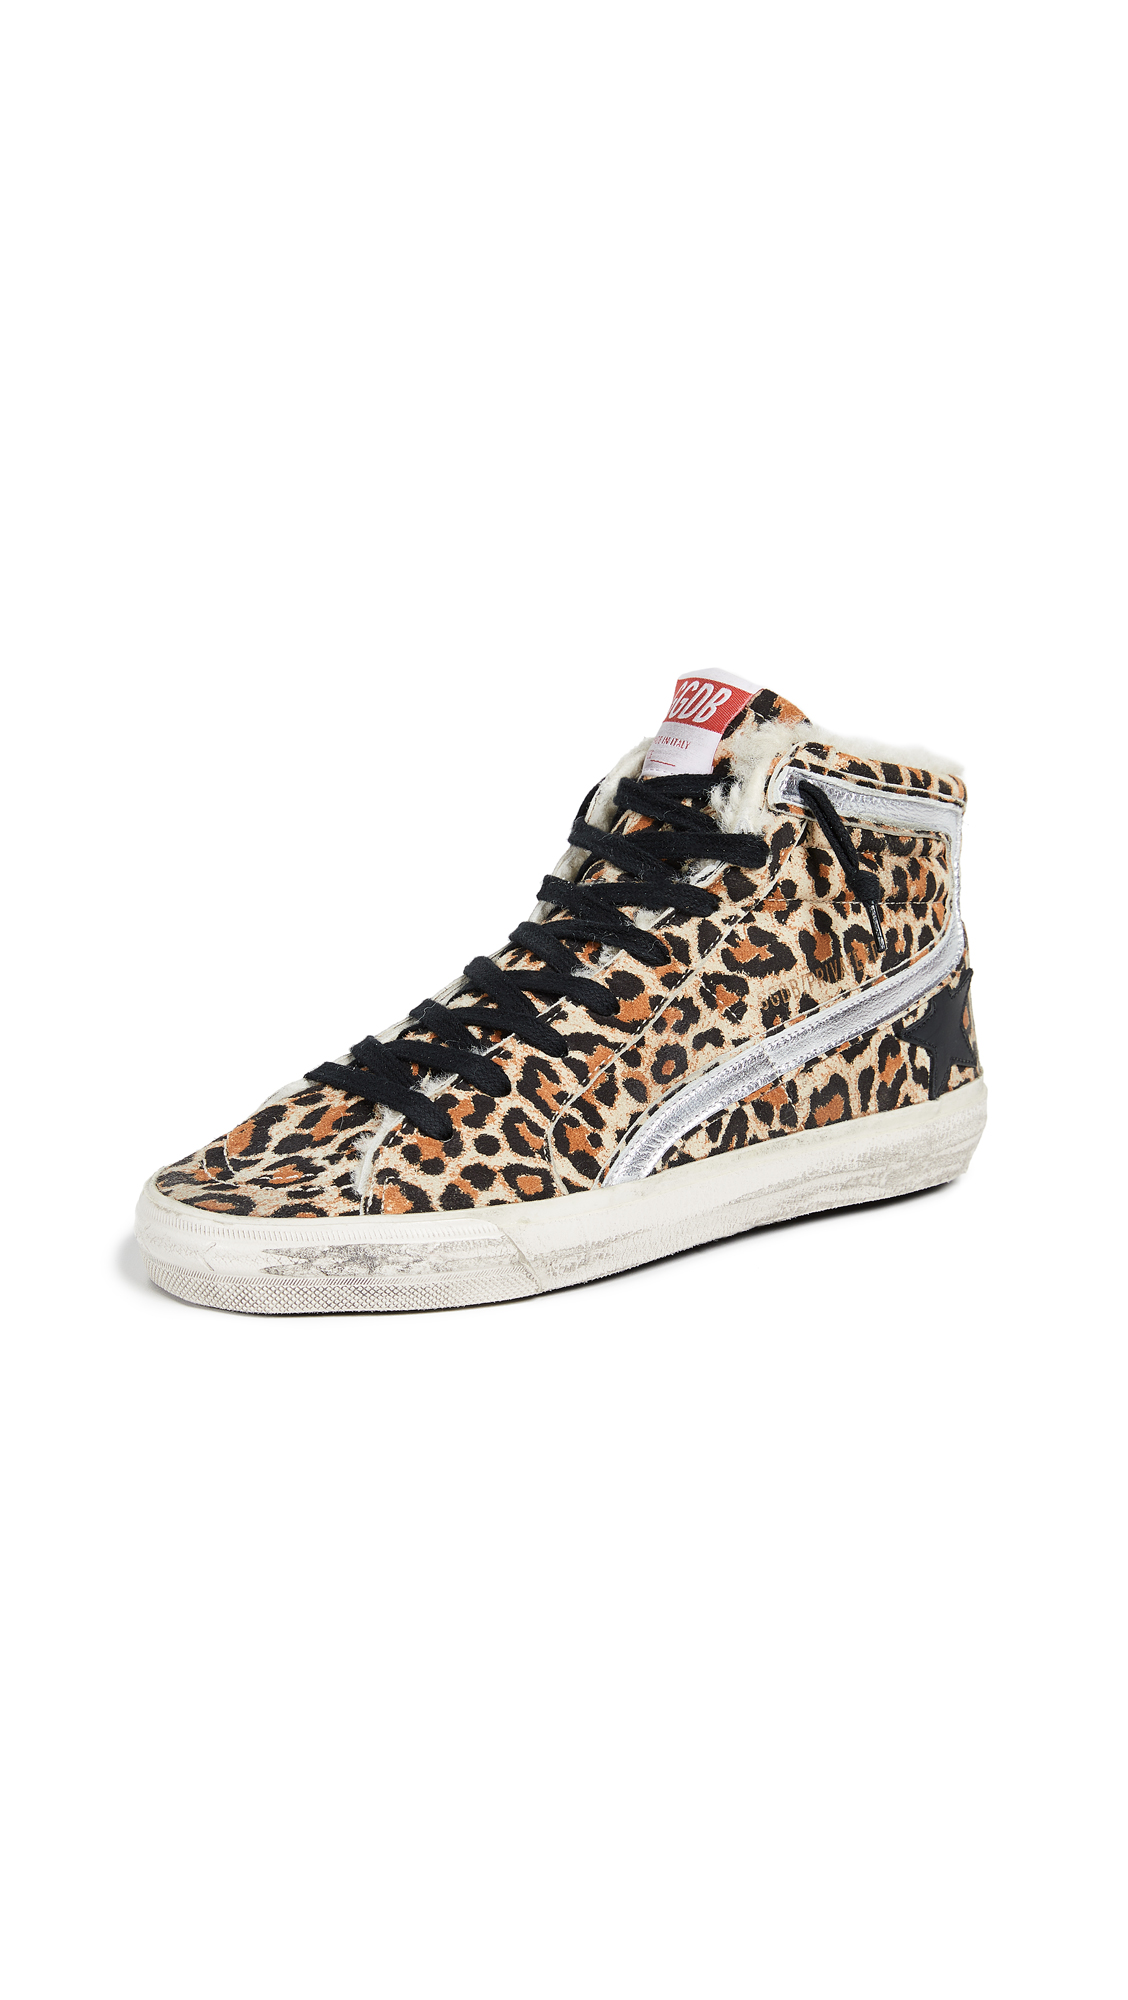 Golden Goose Slide Sneakers - Leopard/Black/Cream